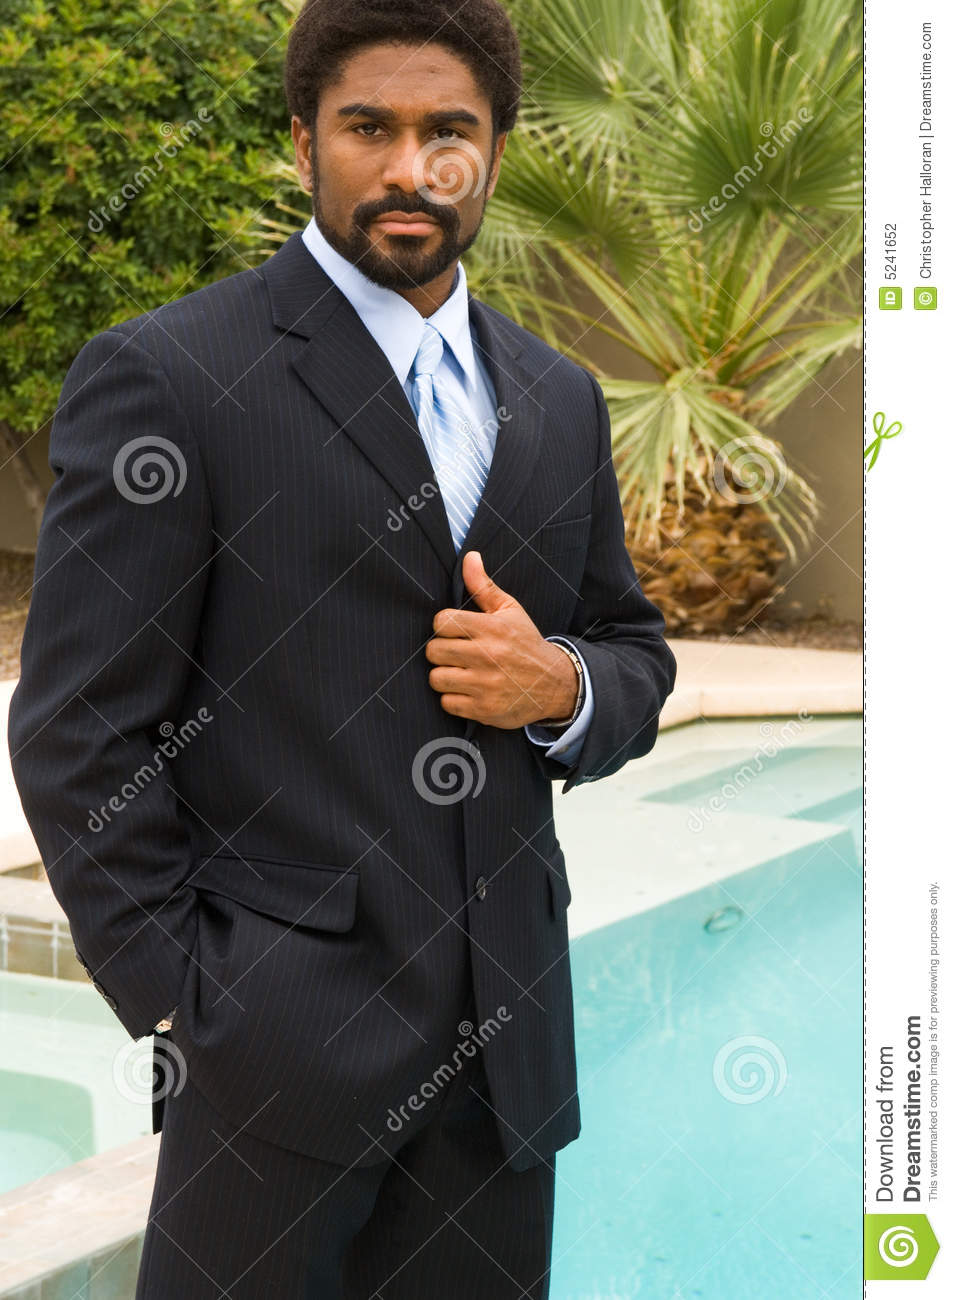 Handsome African-American man in suit